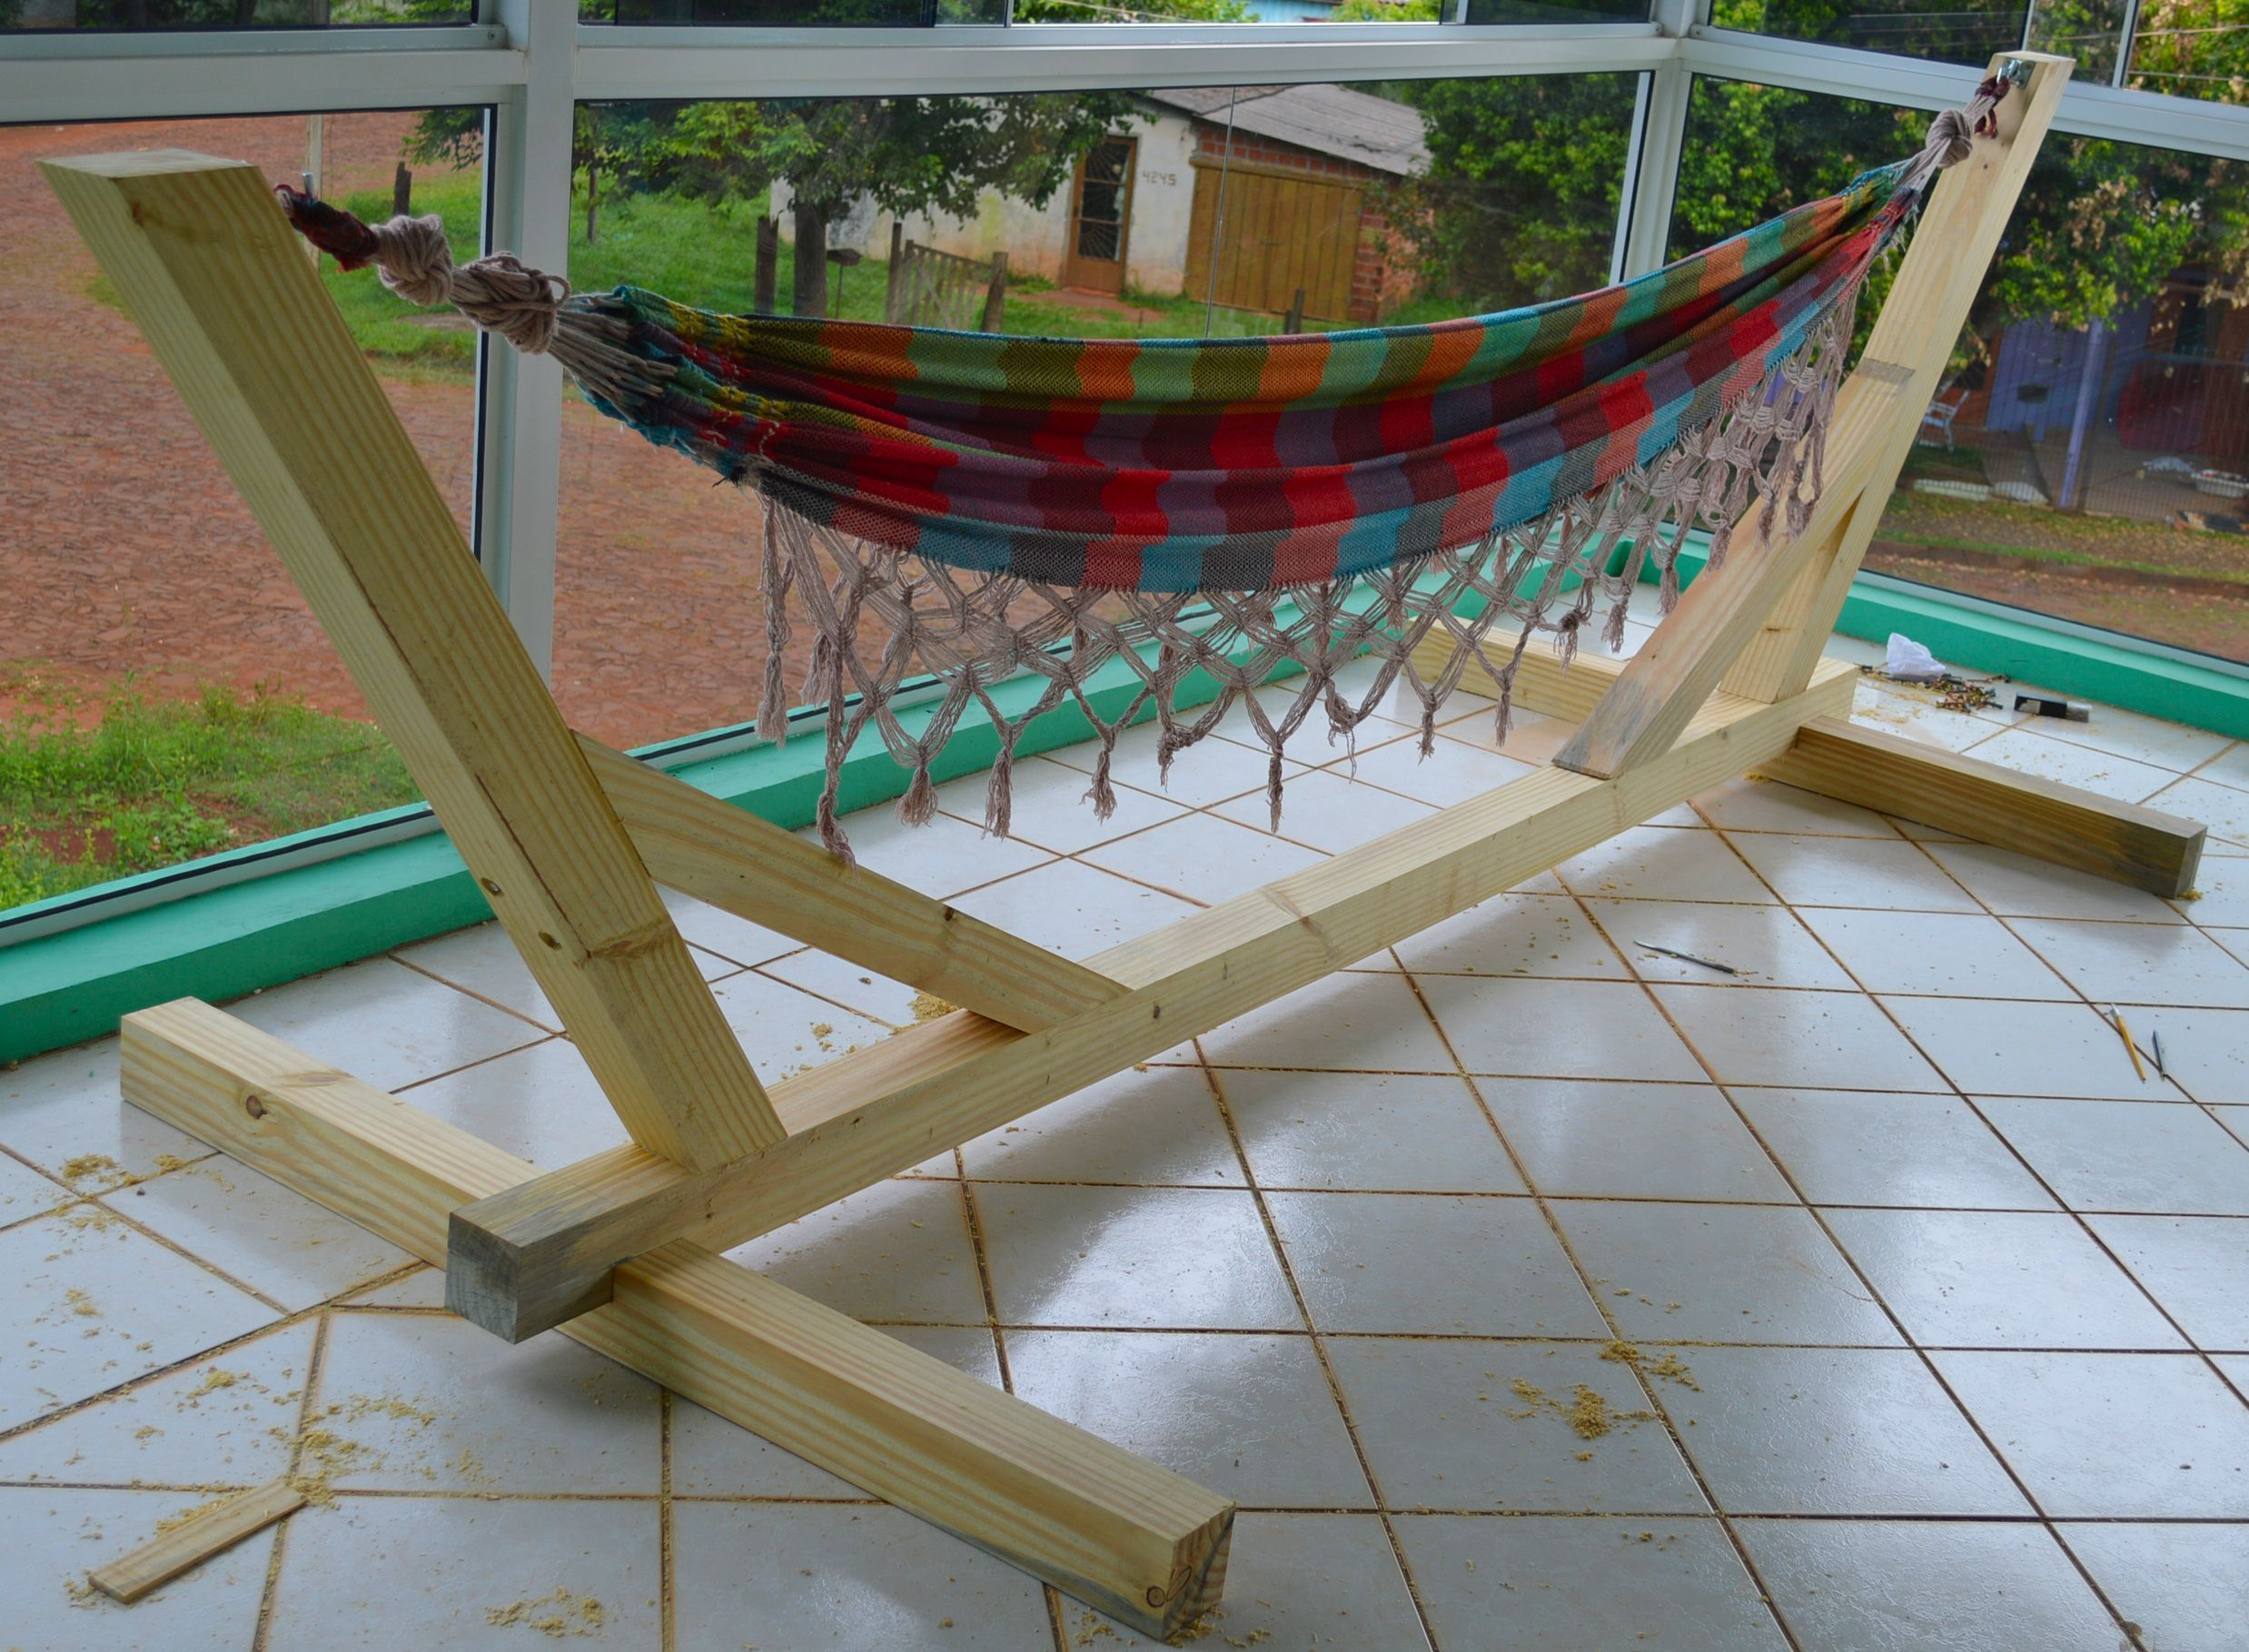 Image Result For Diy Pvc Pipe Hammock Stand